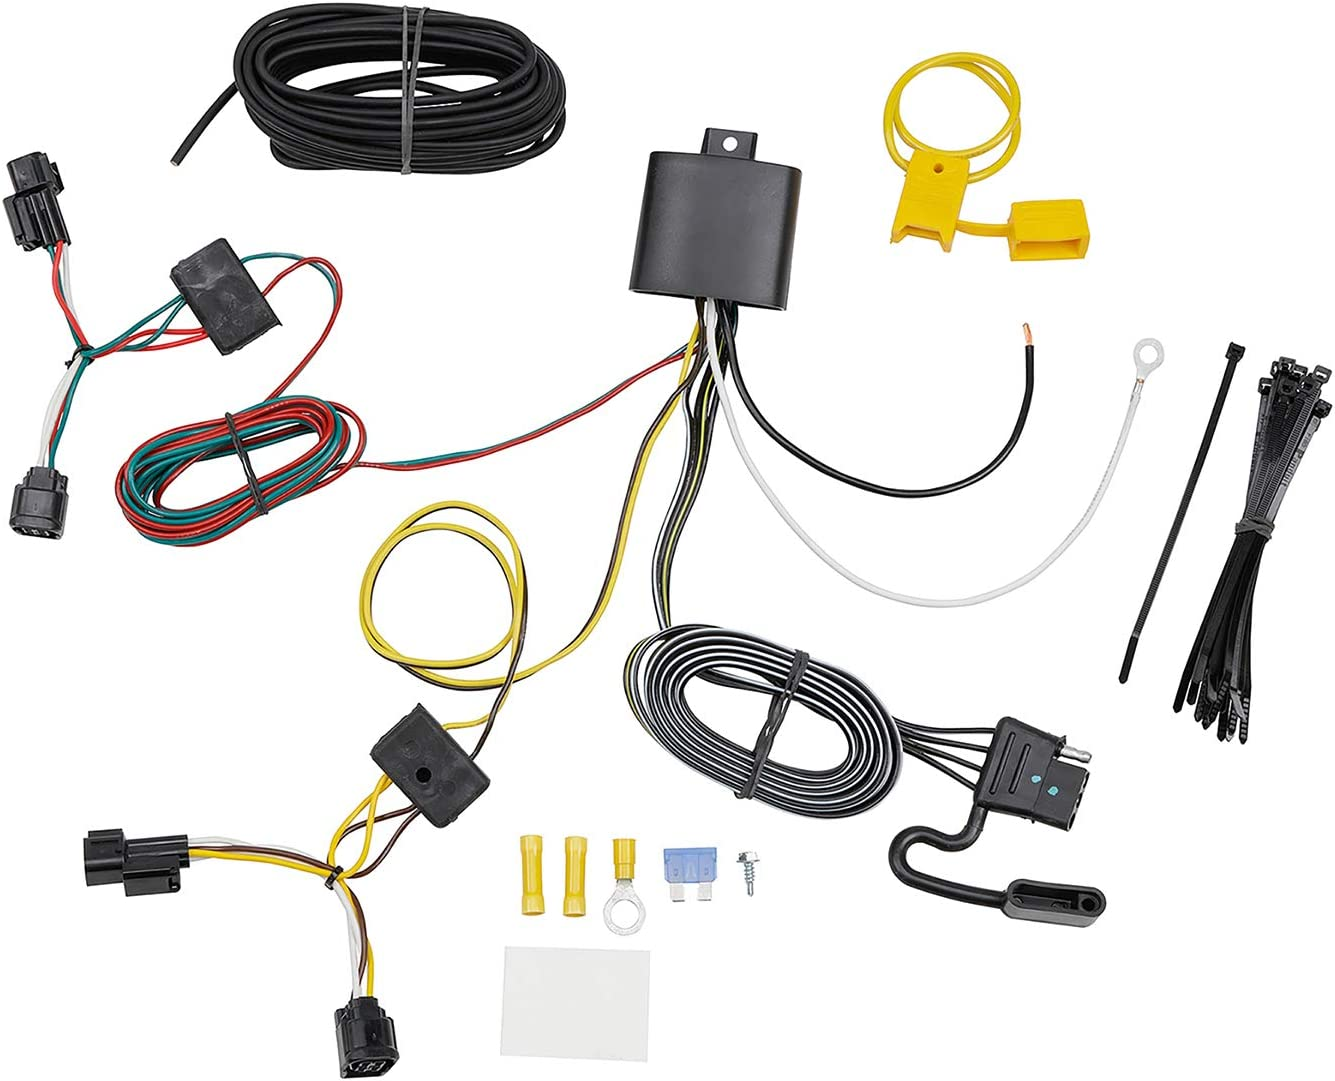 Tekonsha 118776 T-One Connector Assembly with Upgraded Circuit Protected ModuLite HD Module